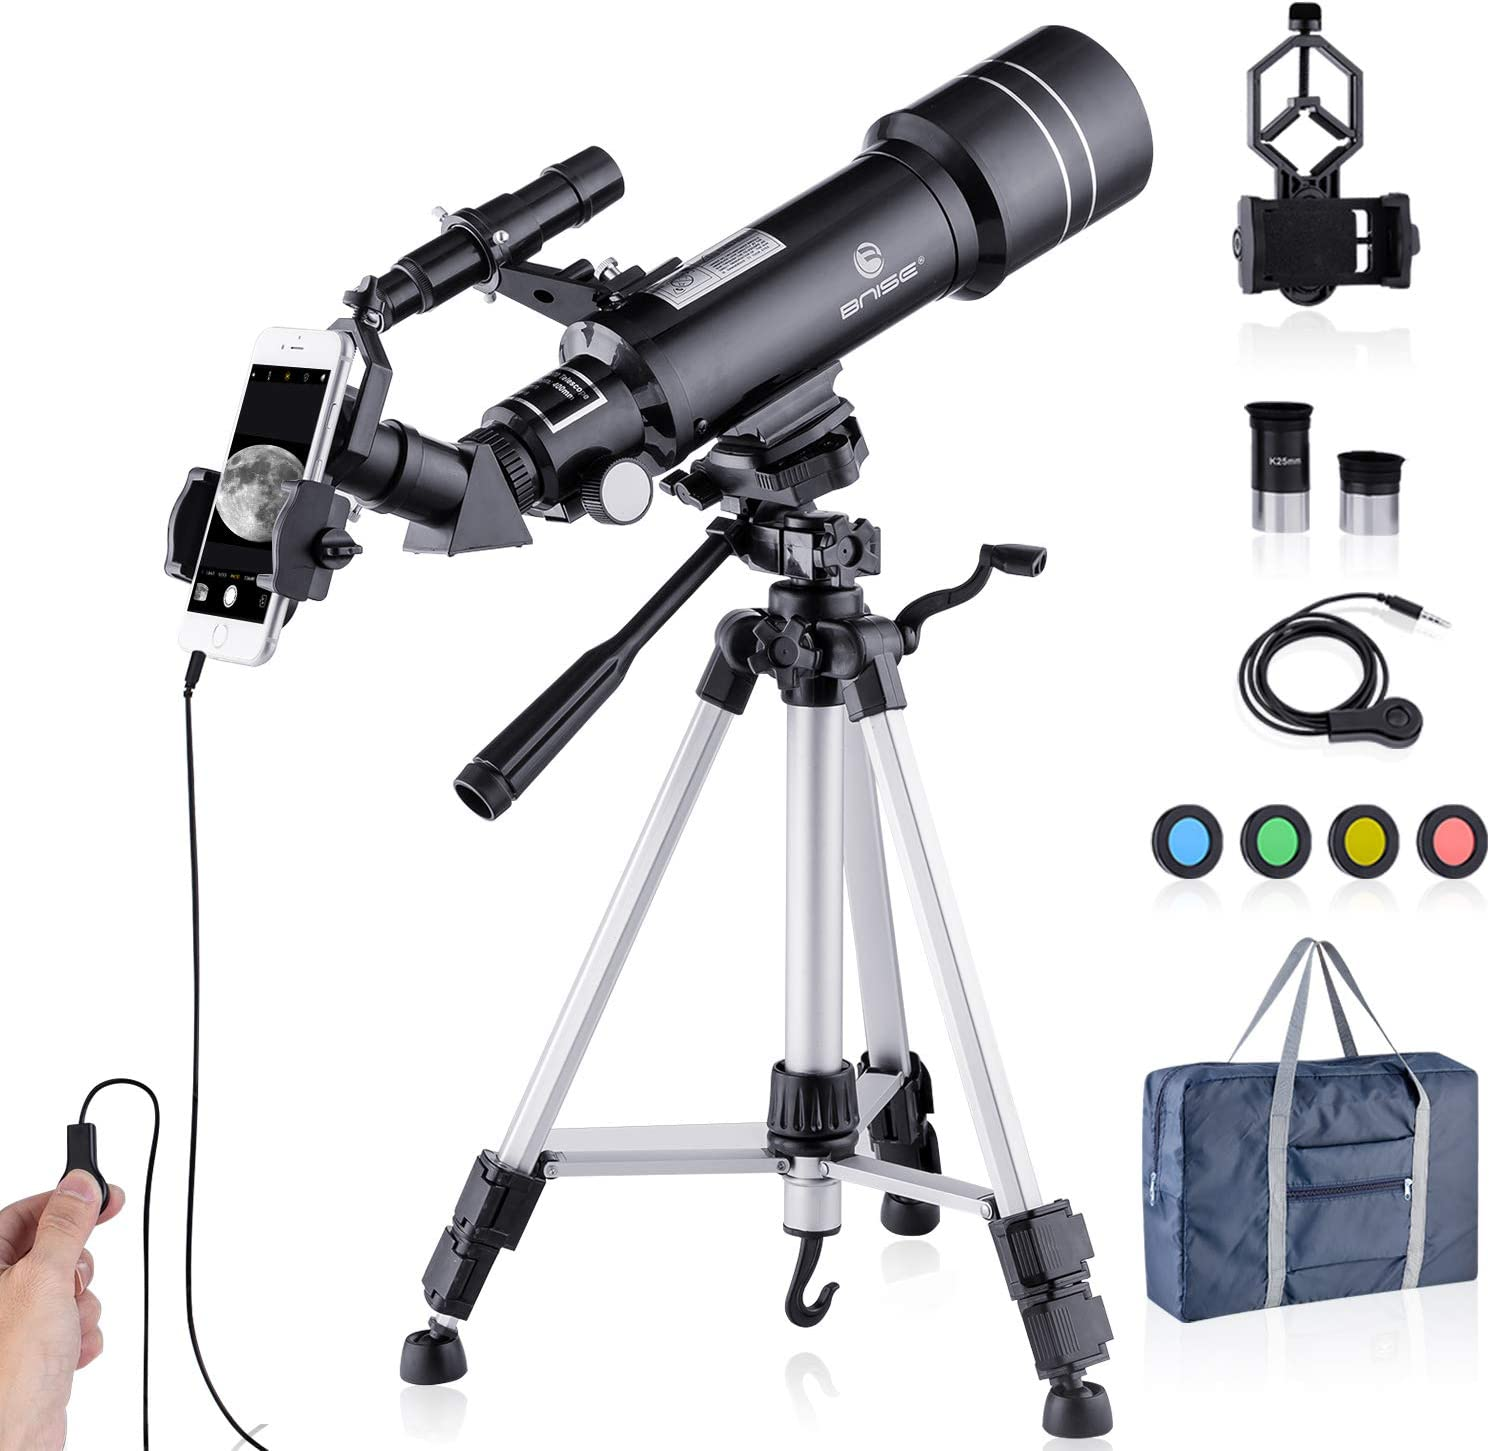 Upgraded Telescope HD 400//70mm Telescope for Kids Adults Refractor Astronomy Telescope Watching The Animals Bird Watching Viewing The City Scenery Watching The Moon Viewing The Natural Scenery